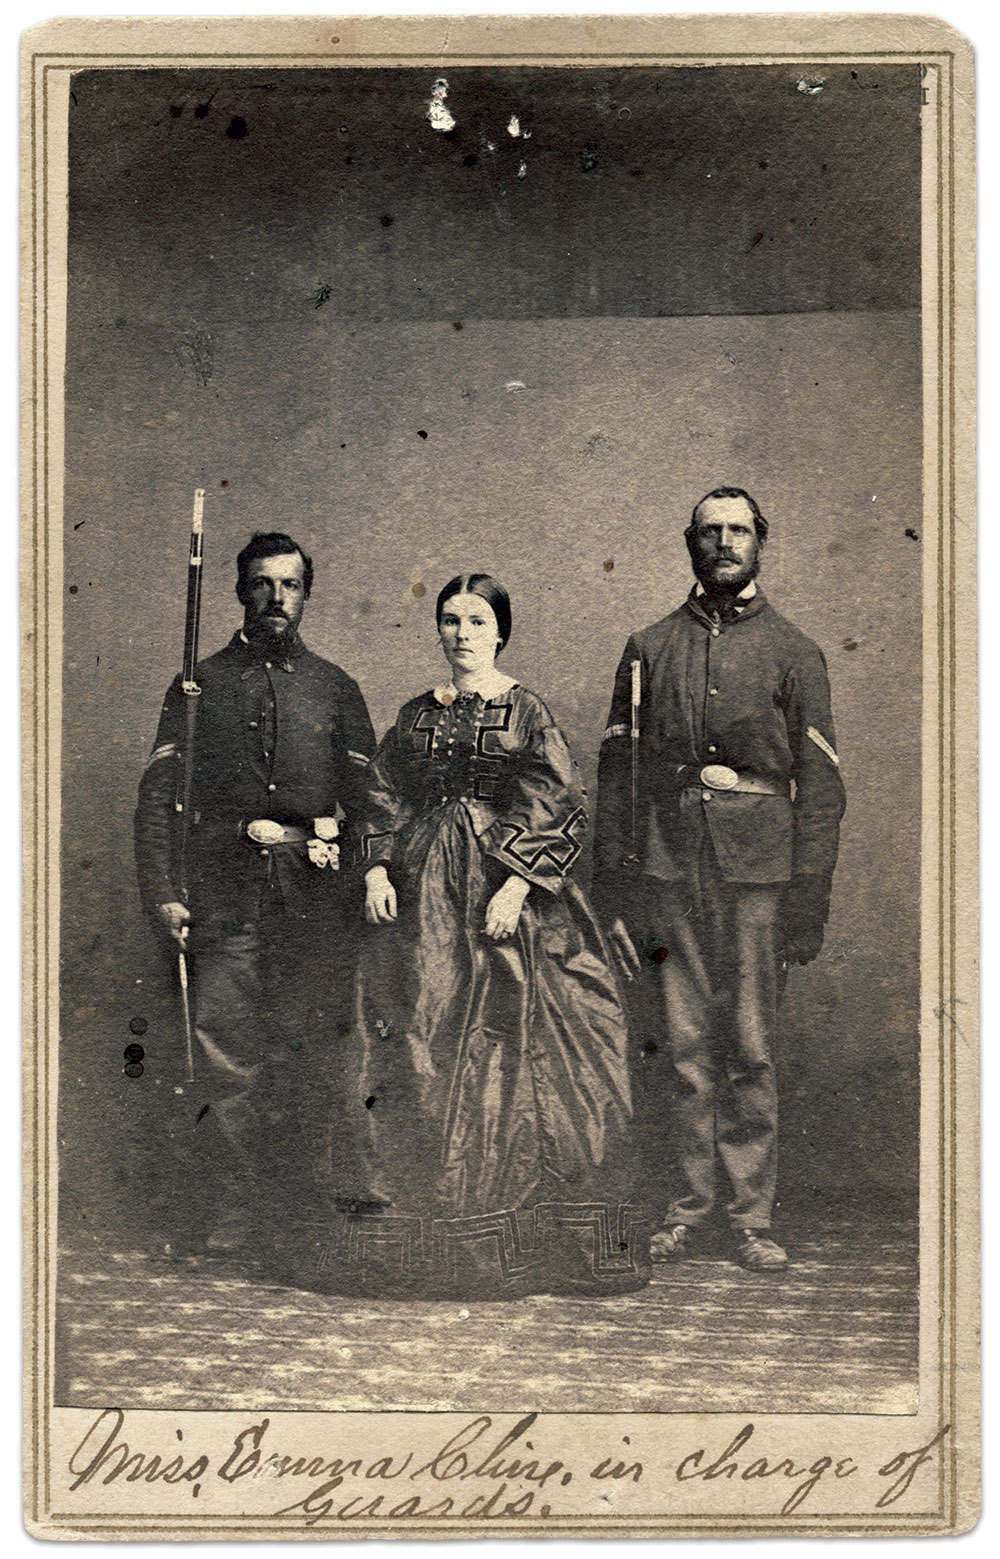 Carte de visite by Barr & Young of Vicksburg, Miss. Michael J. McAfee Collection.